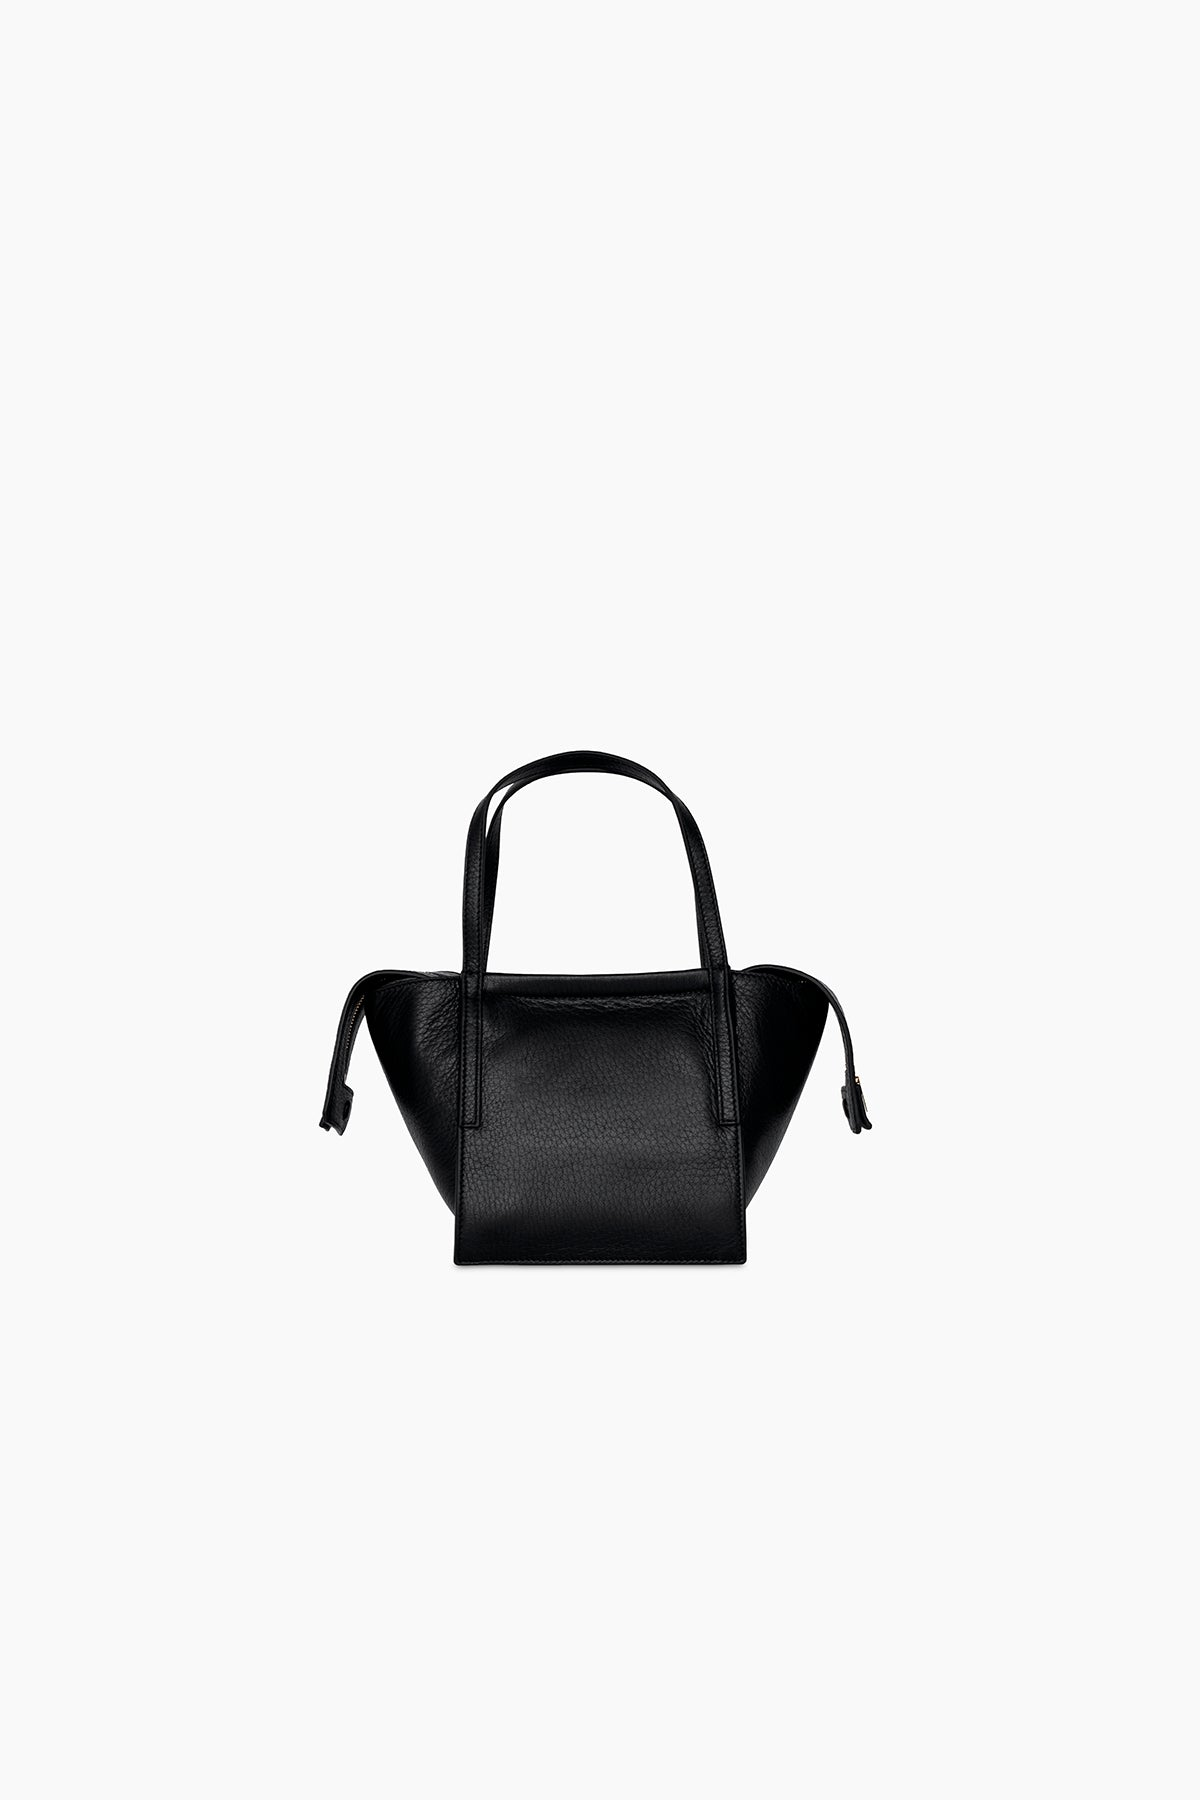 3/4 Milly Bag | Black